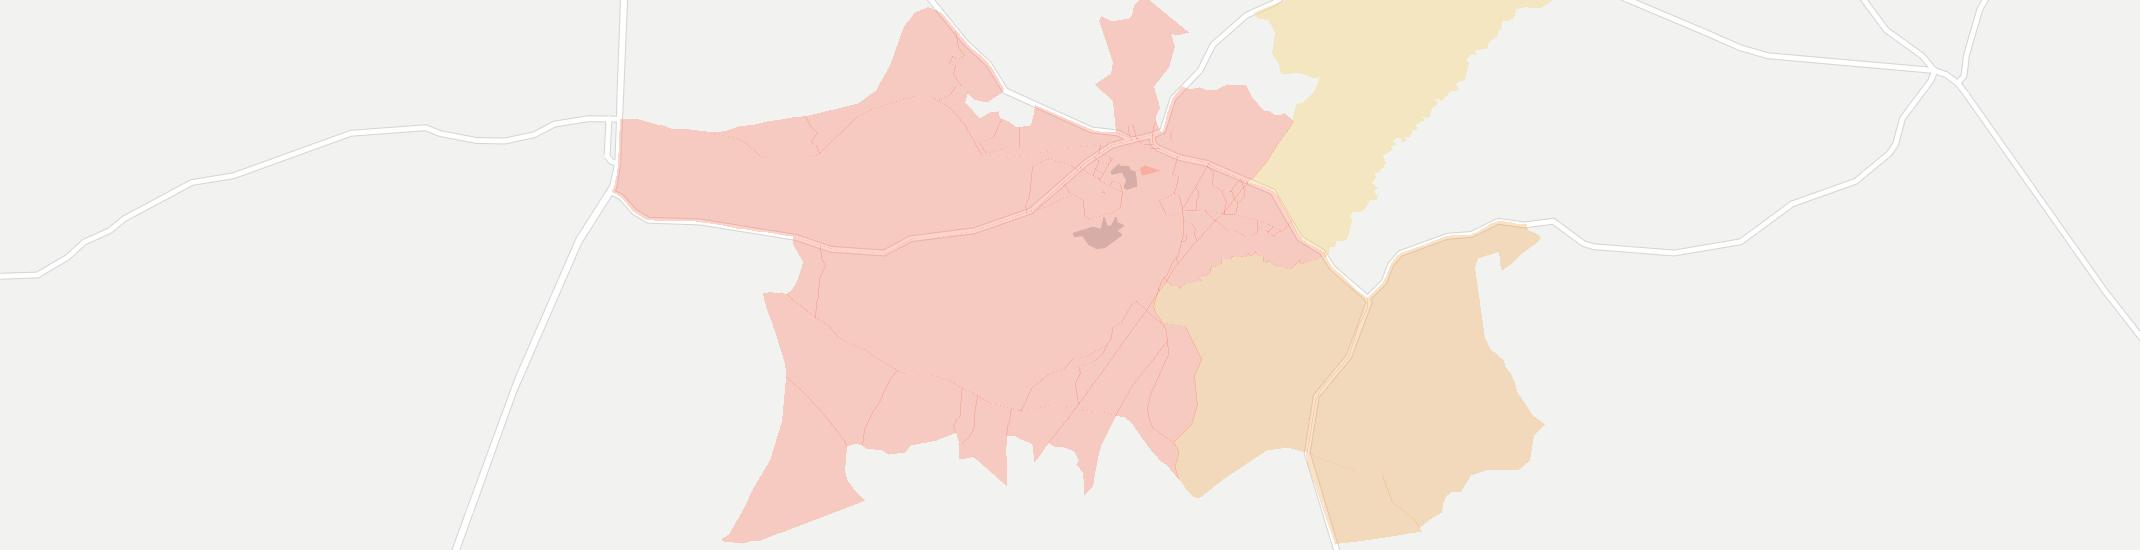 Camden Internet Competition Map. Click for interactive map.